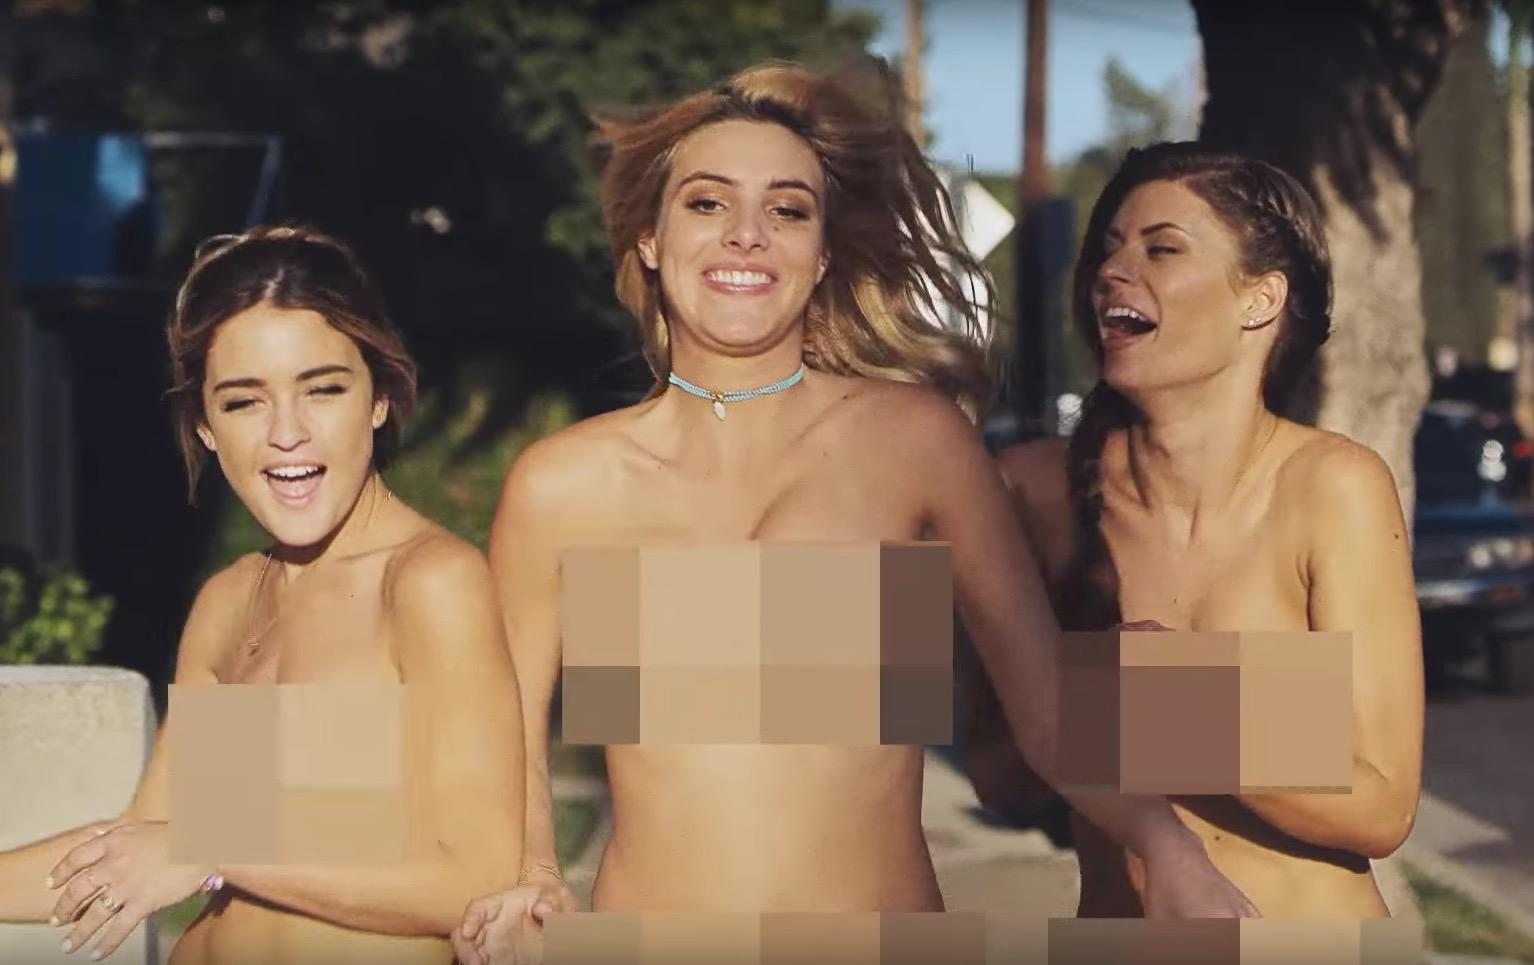 naked women playing in video